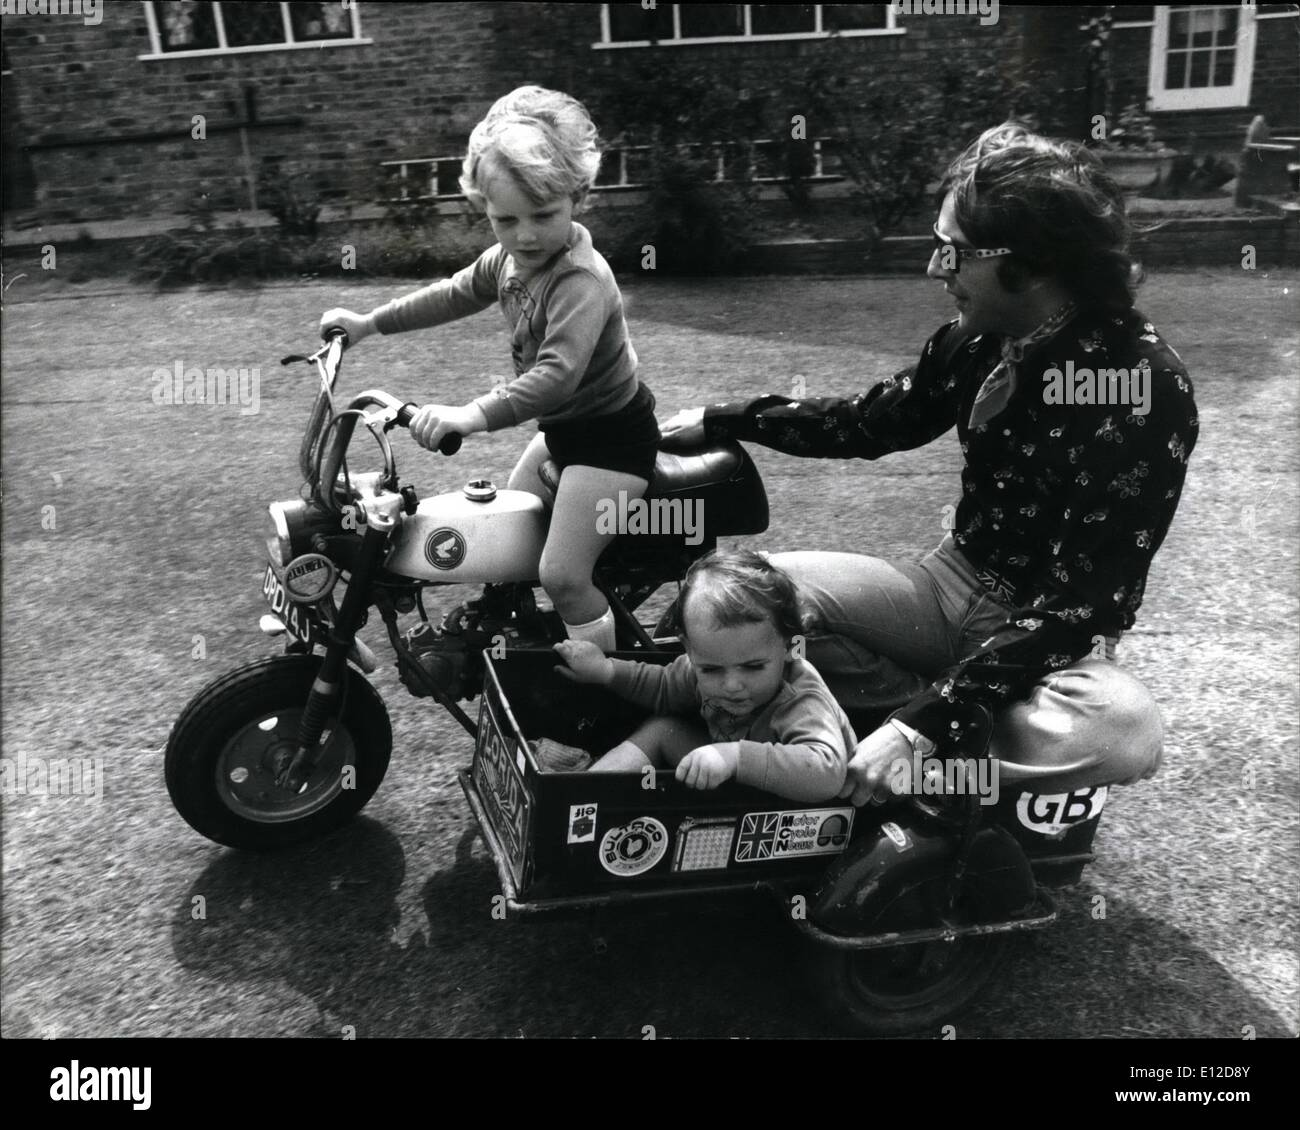 Dec. 15, 2011 - Phil Read's Son - the 4 year old motor-bike fiend.: Pip, the on of Motor-Cycle World Champion Phil Read simply can't wait until his legs are long enough to reach the pedals. So dad had to get a special mini version of his own 500 c.c. machine made at the MV factory in Milan. Pip's bike is a power packed 48 c.c. machine with a top speed of 15 m.p.h. - perfect for the 'Garden Circuit' at the Read's Oxshott home in Surrey. The bike is a prefect replica of Dad's bike, it cost 180 and Phil say's; ''It makes a great little ride - Stock Image